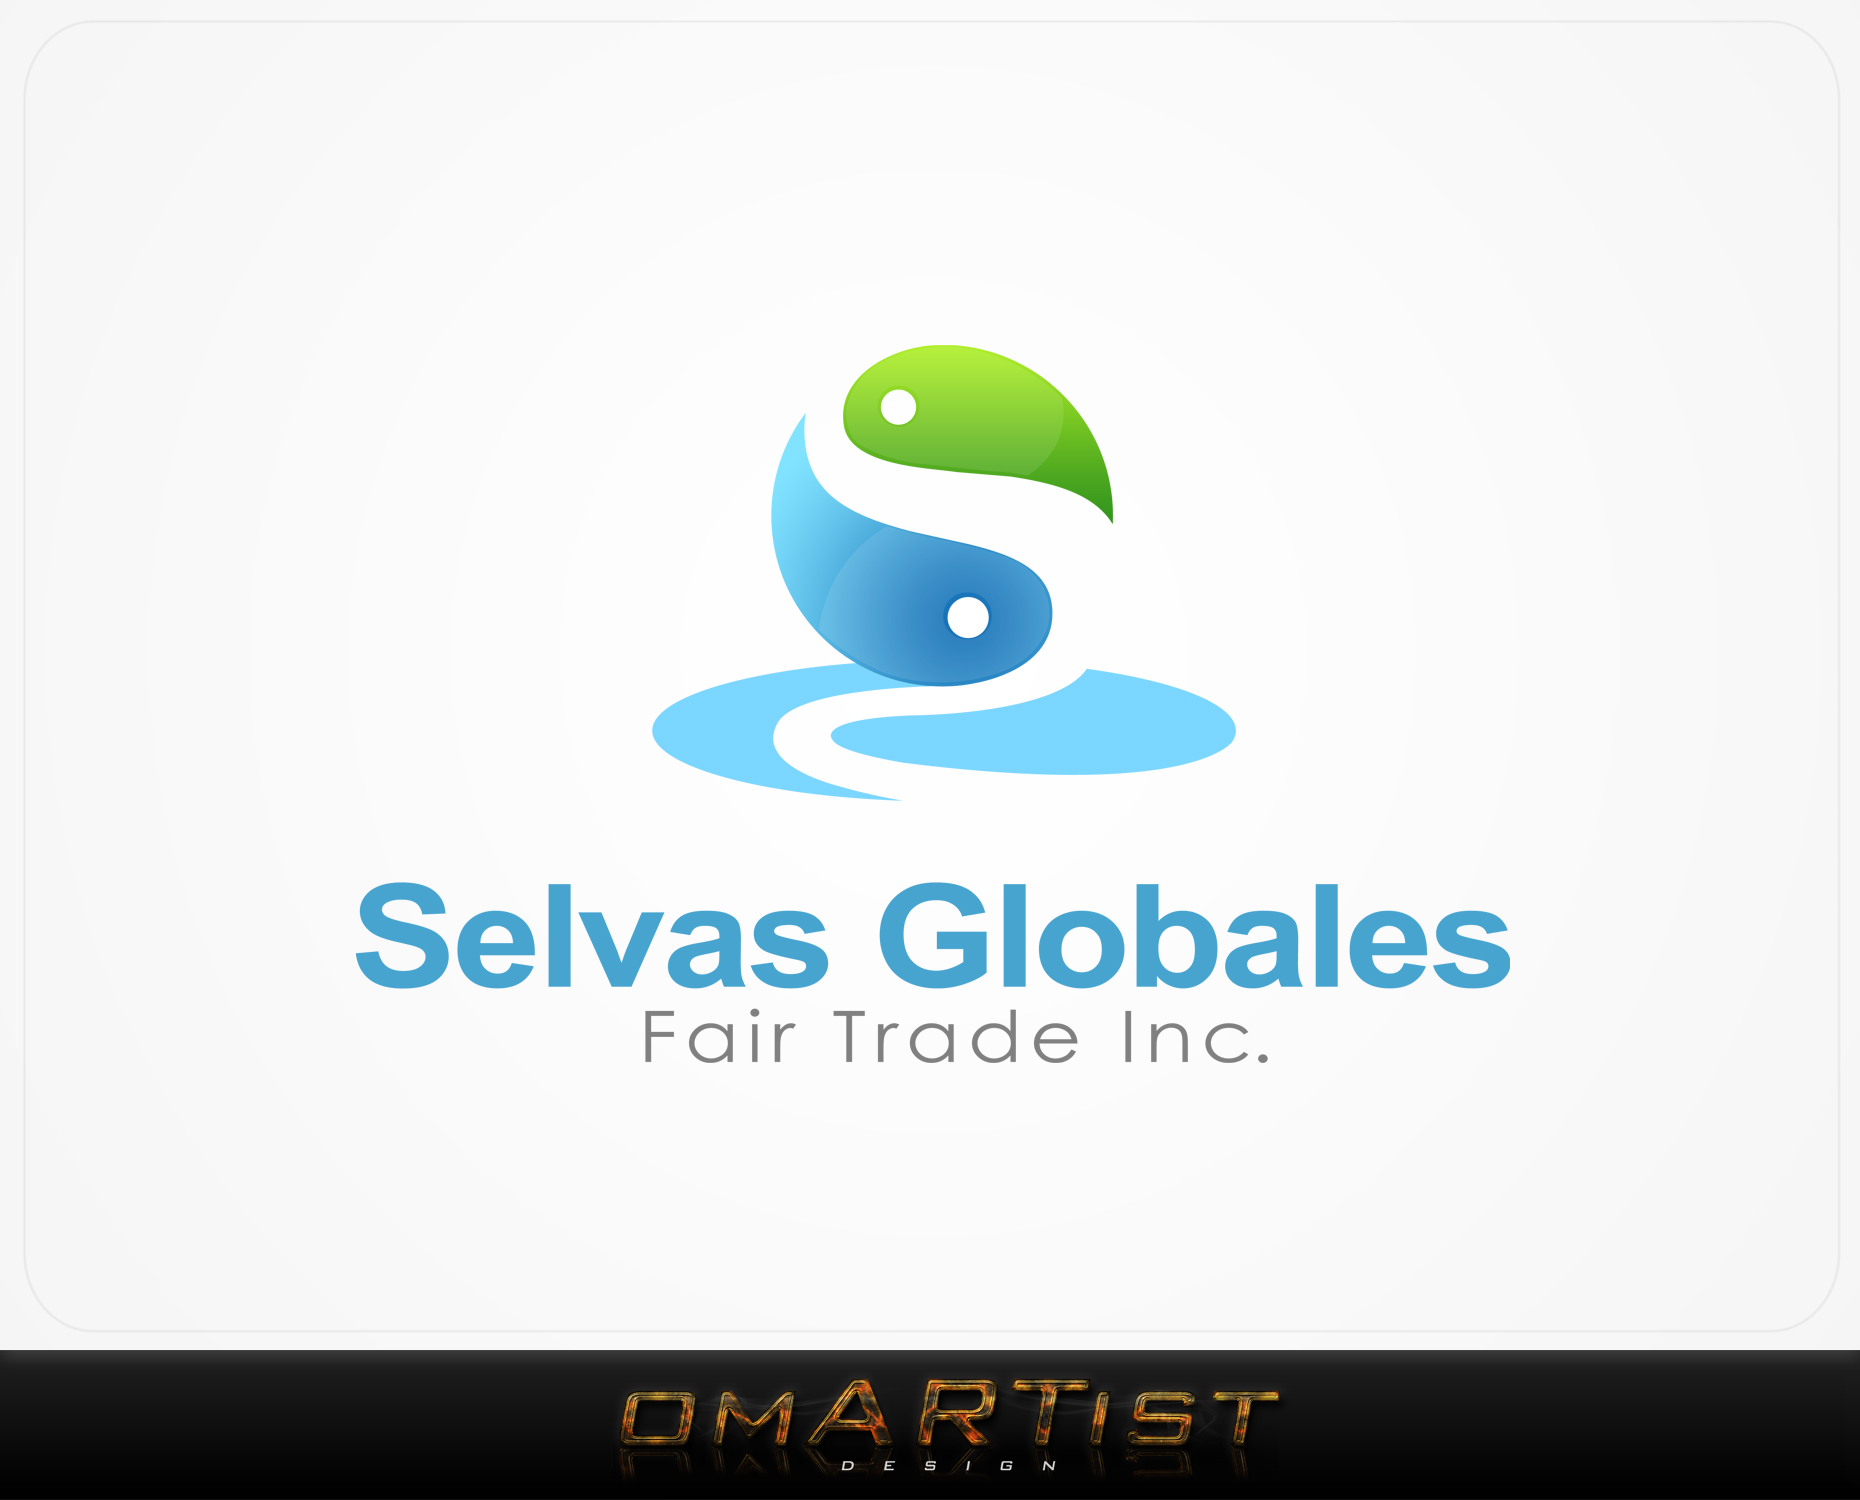 Logo Design by omARTist - Entry No. 39 in the Logo Design Contest Captivating Logo Design for Selvas Globales Fair Trade Inc..